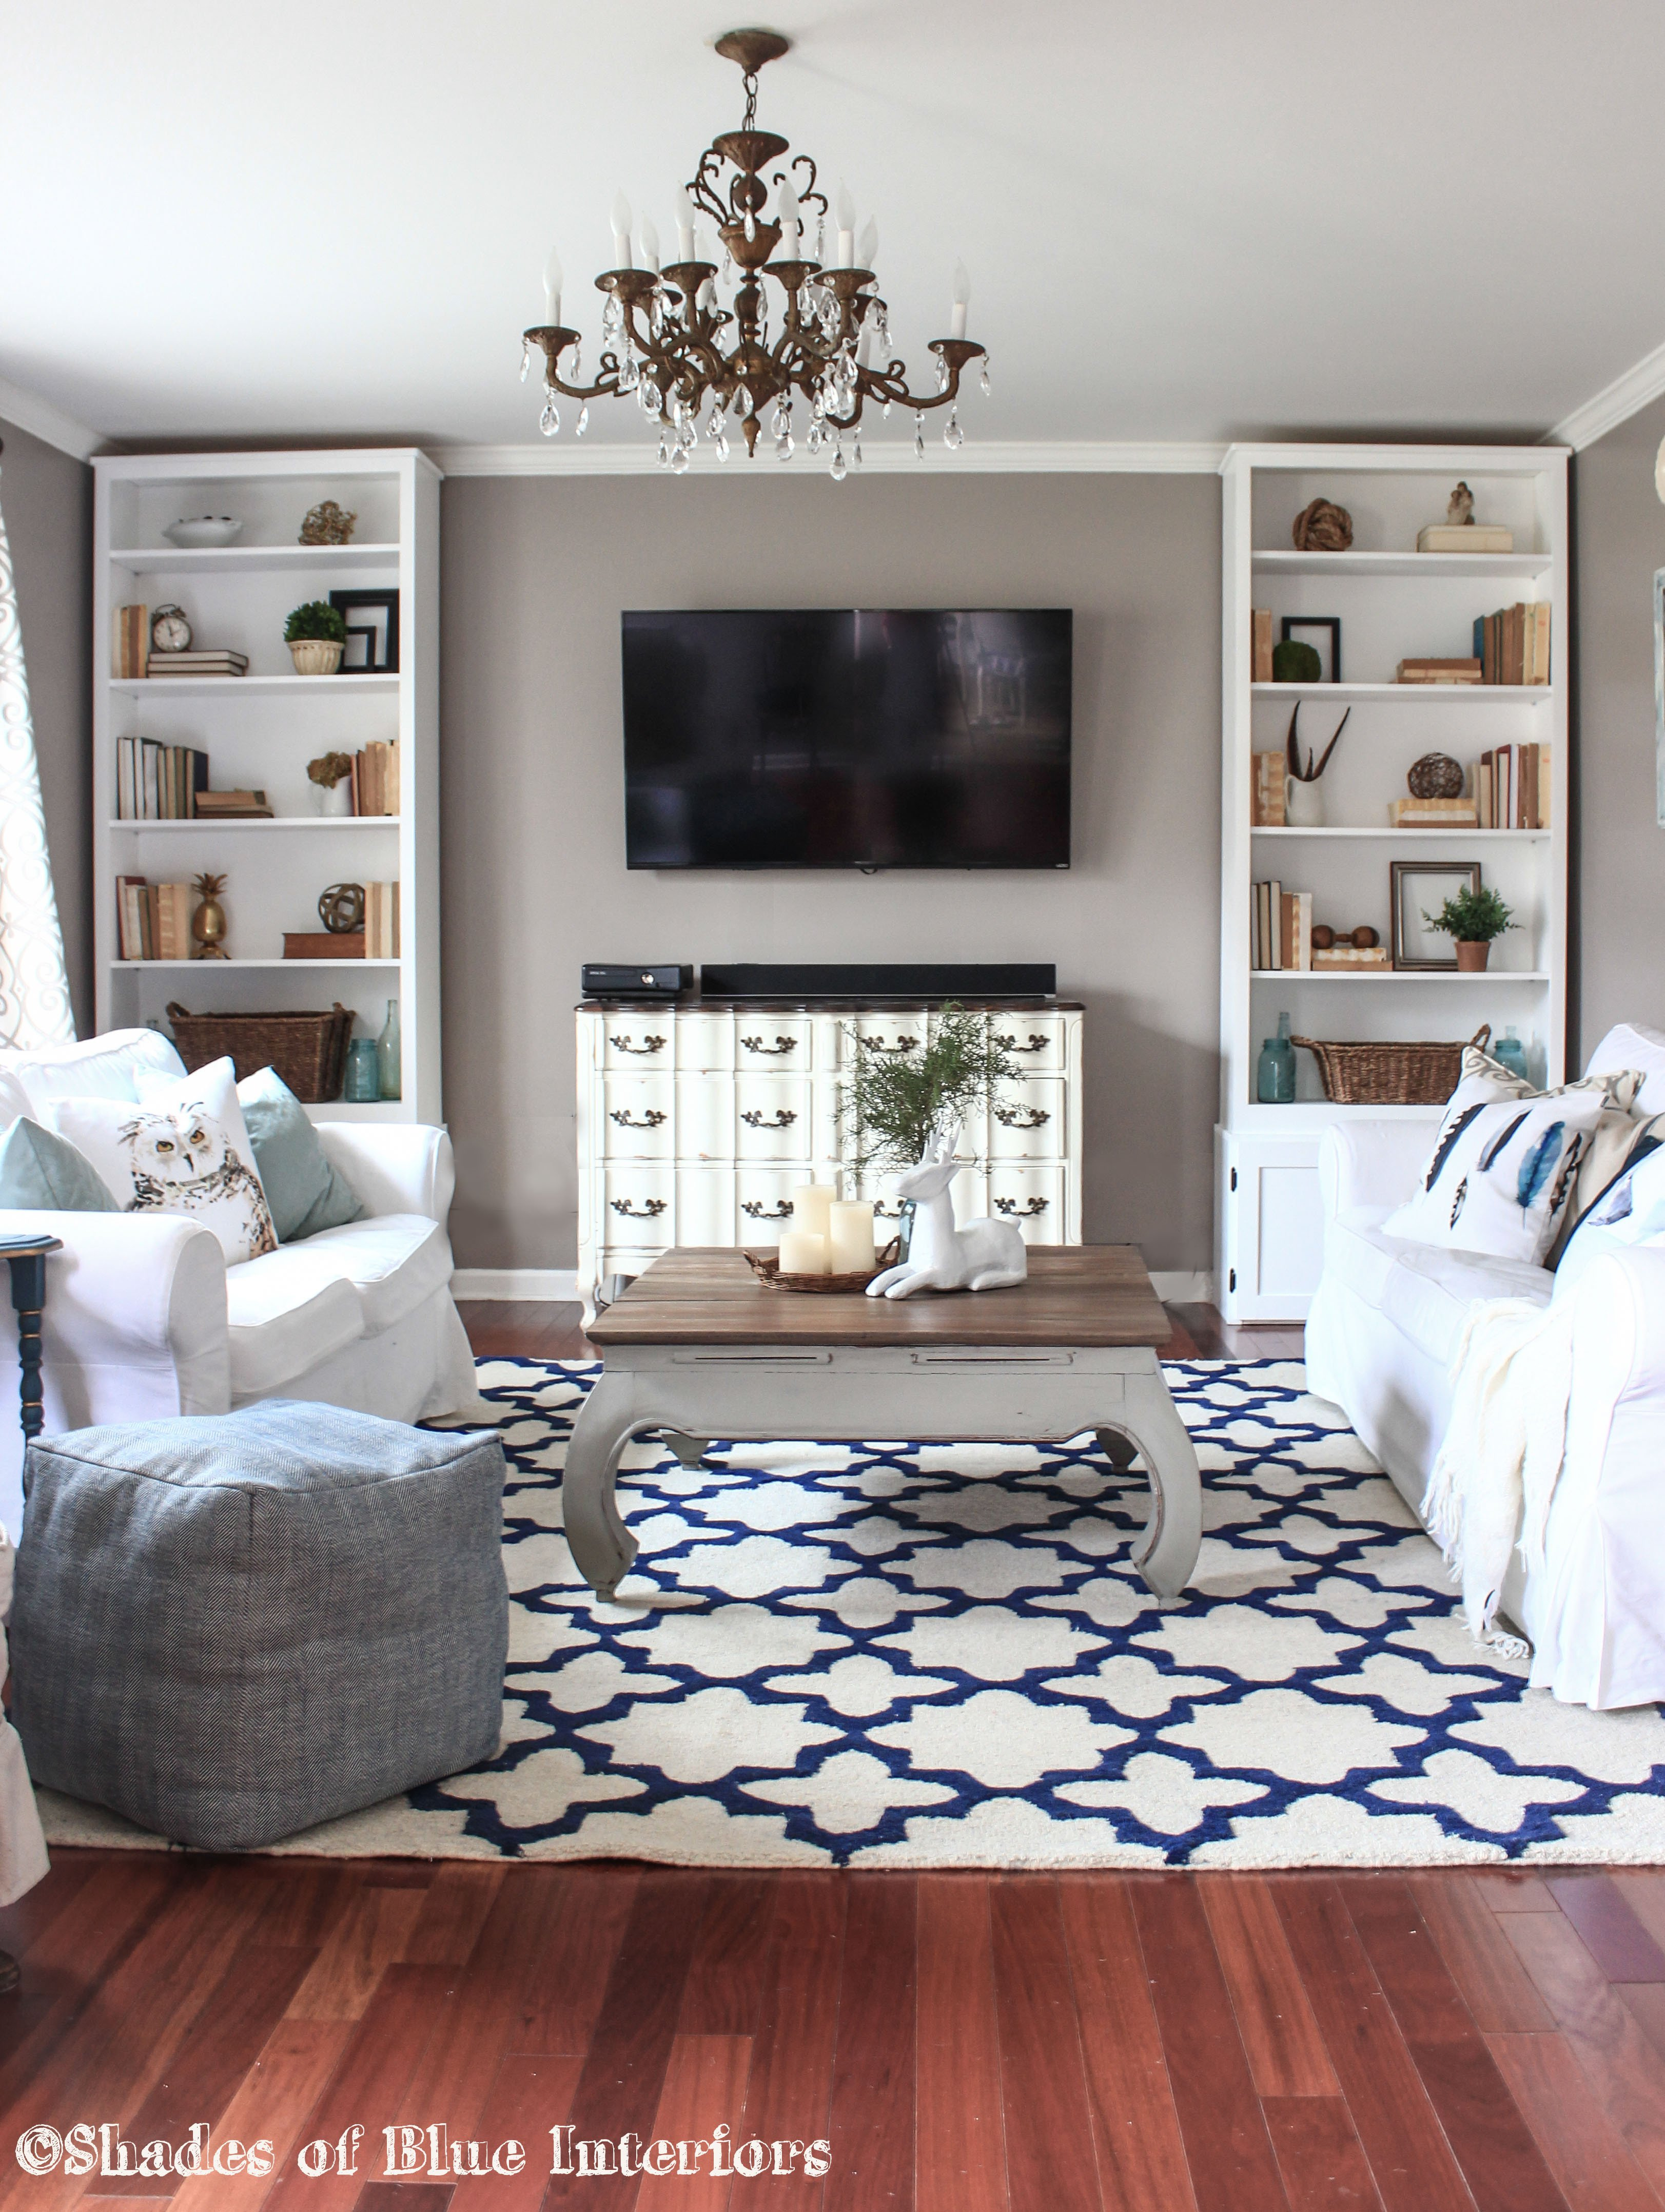 Rug for Living Room Ideas Beautiful New Living Room Rug Shades Of Blue Interiors